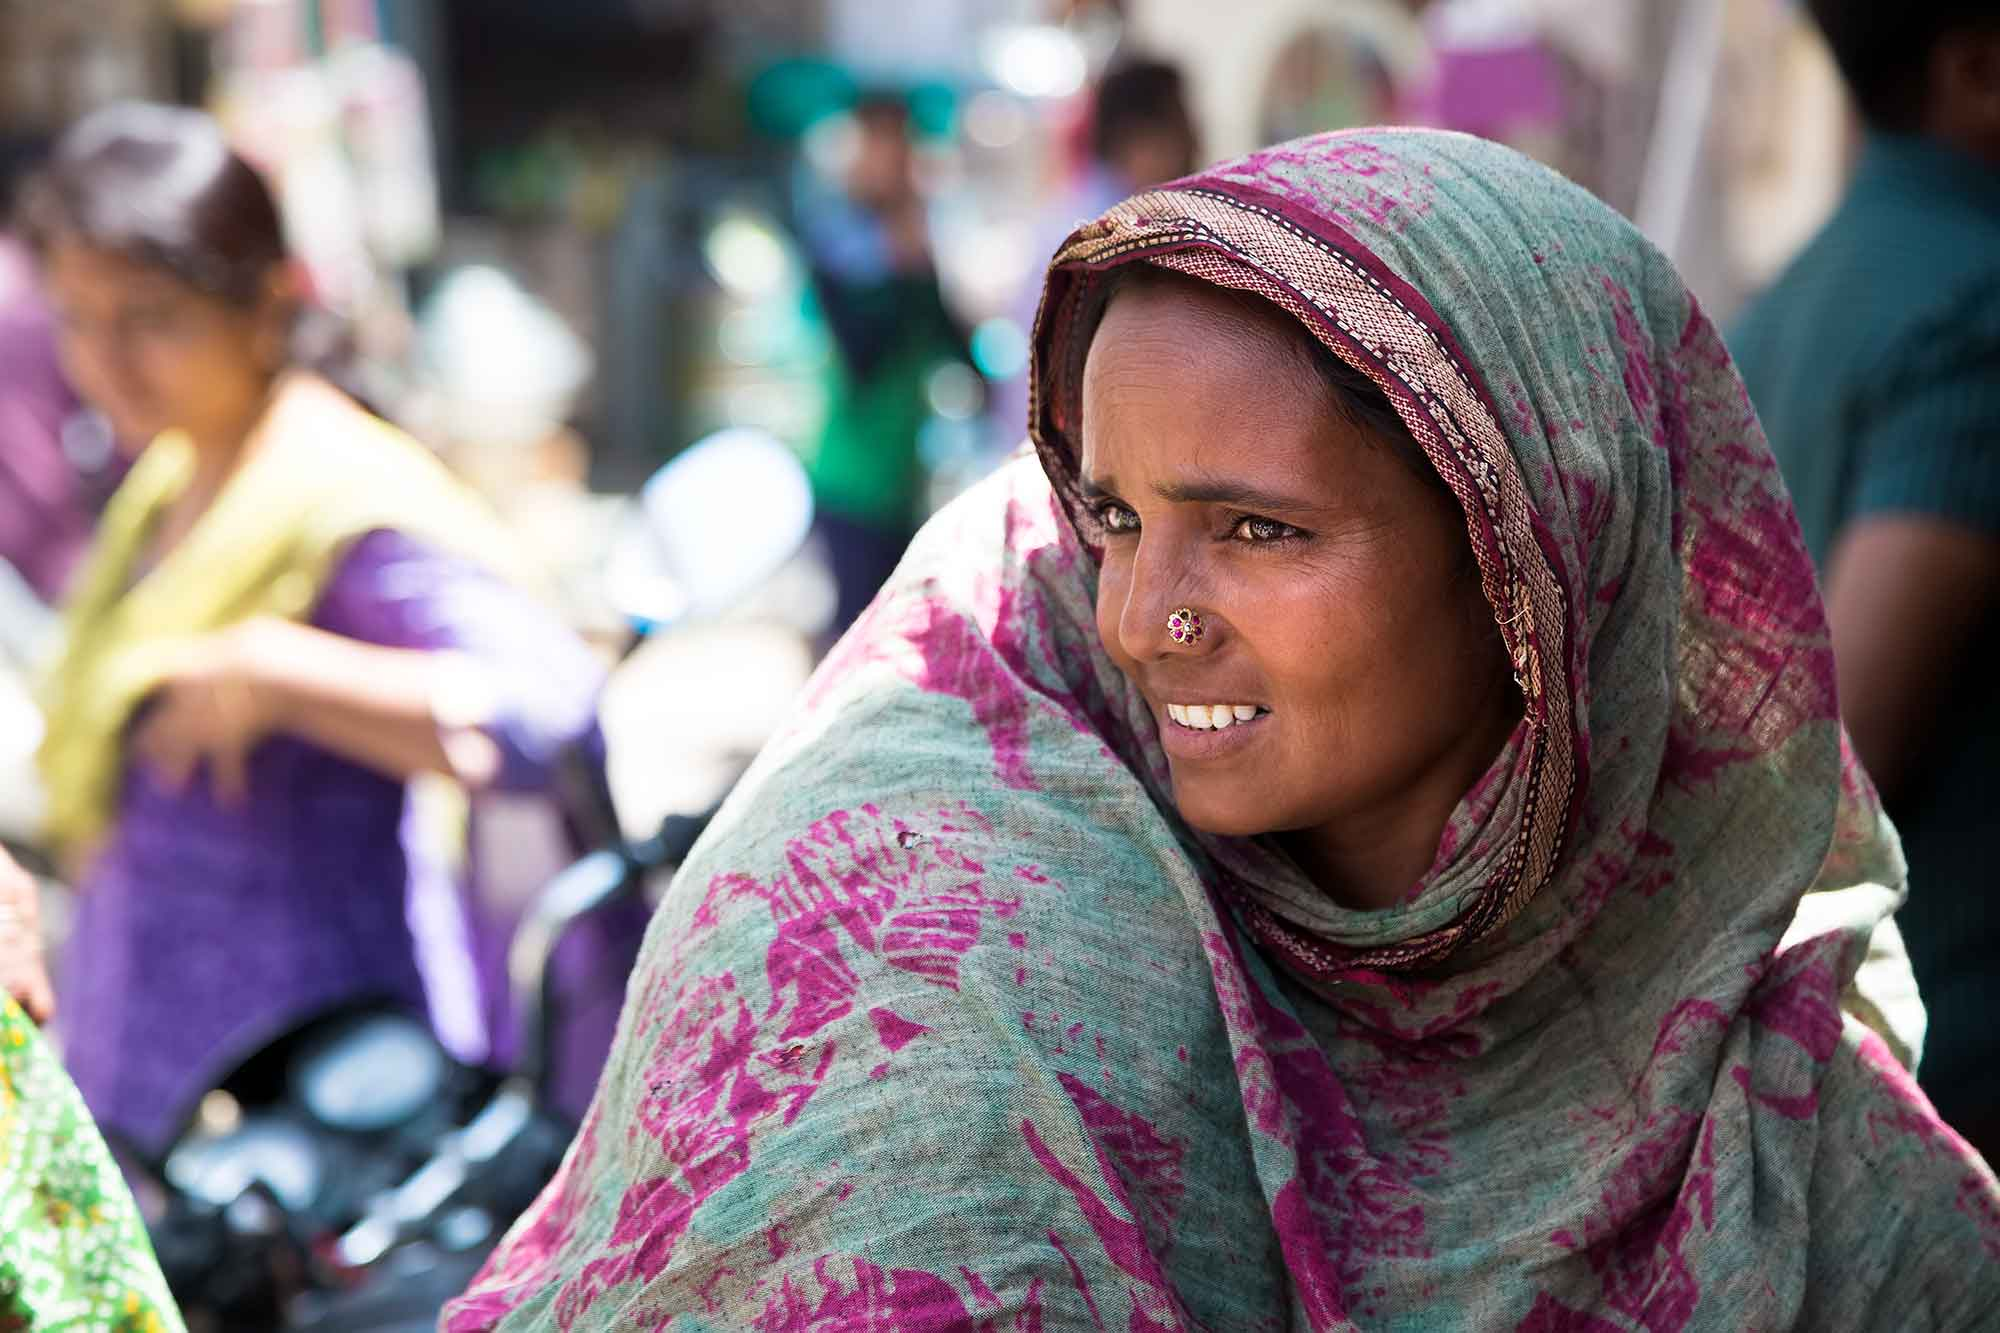 portrait-market-woman-buhj-gujarat-india